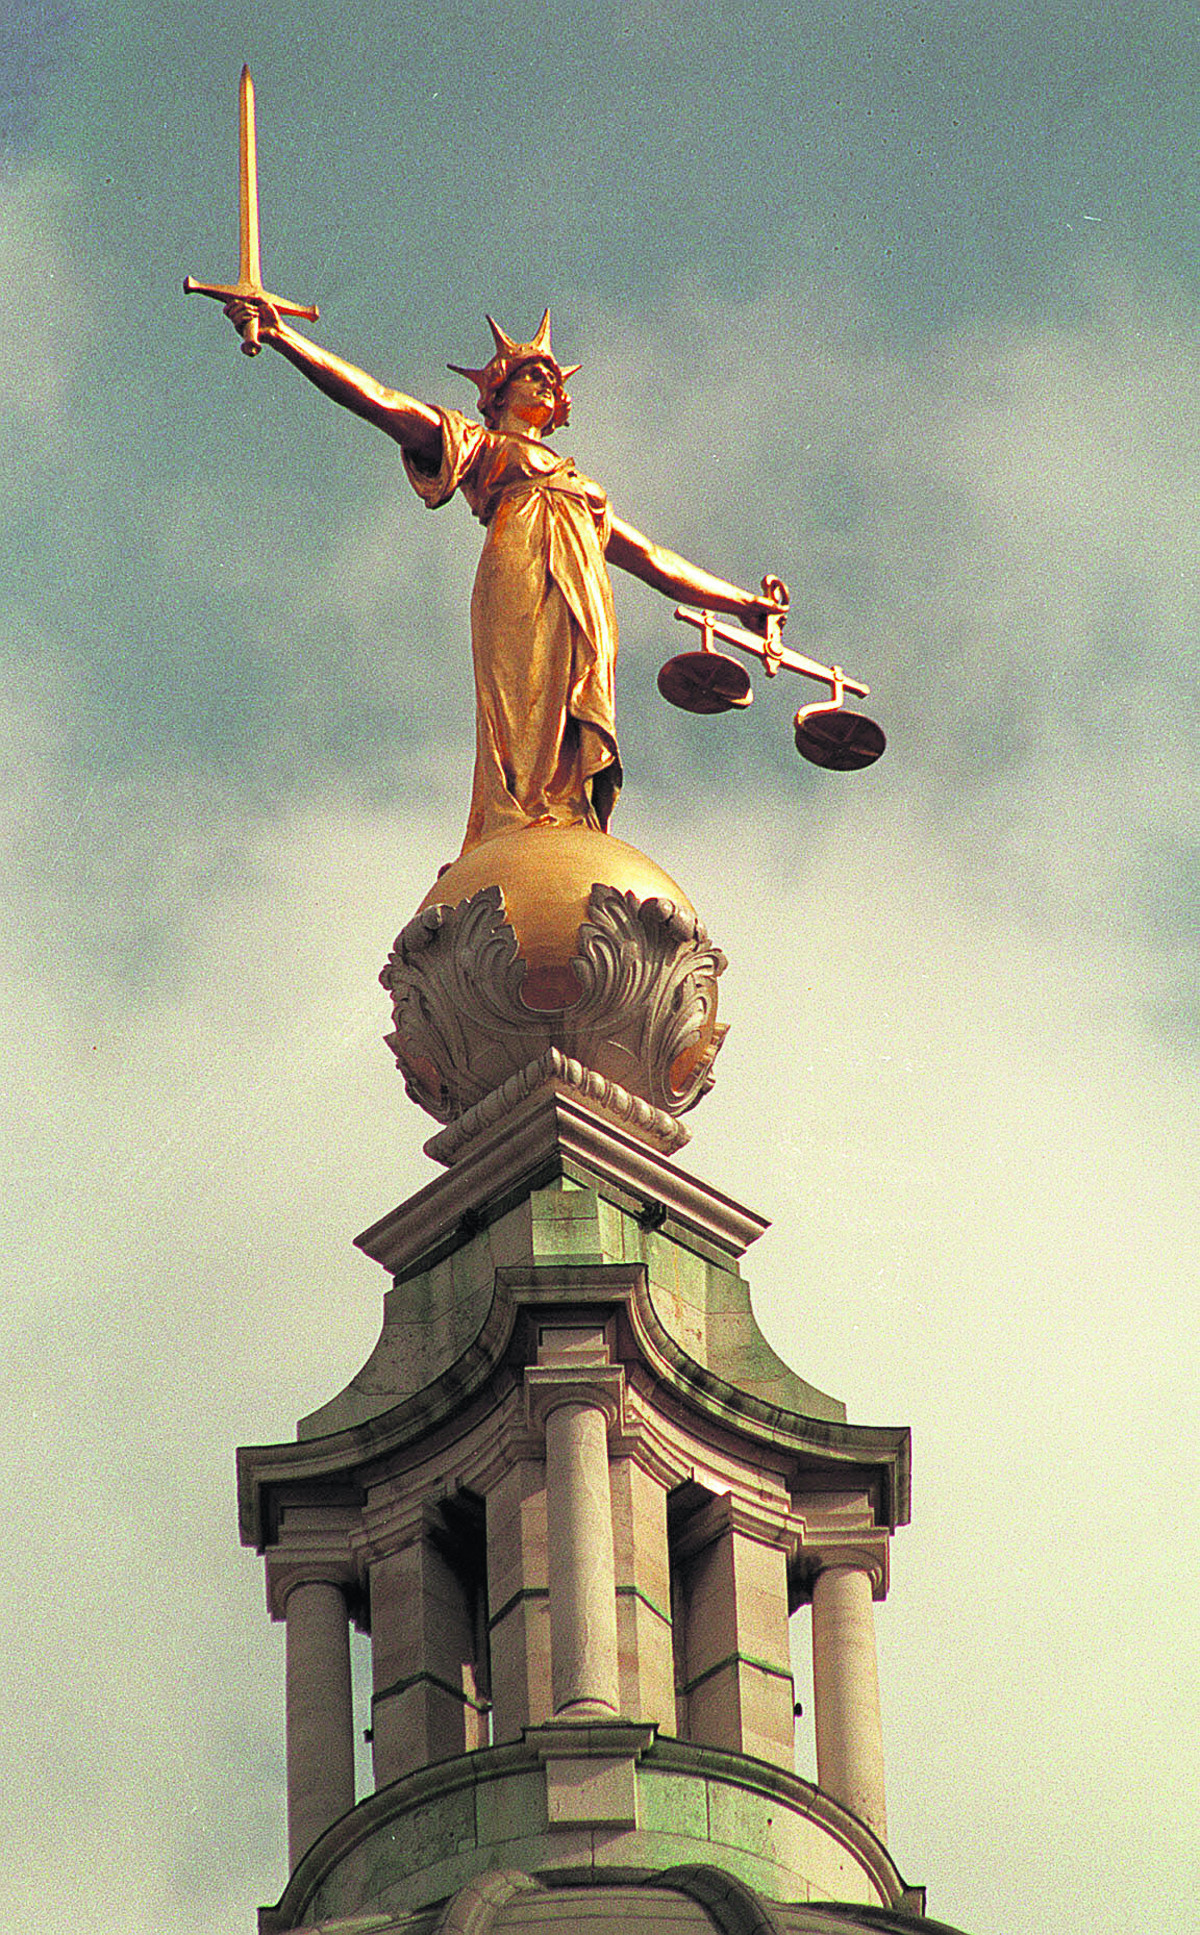 Benefit fraudsters from Epsom plead guilty